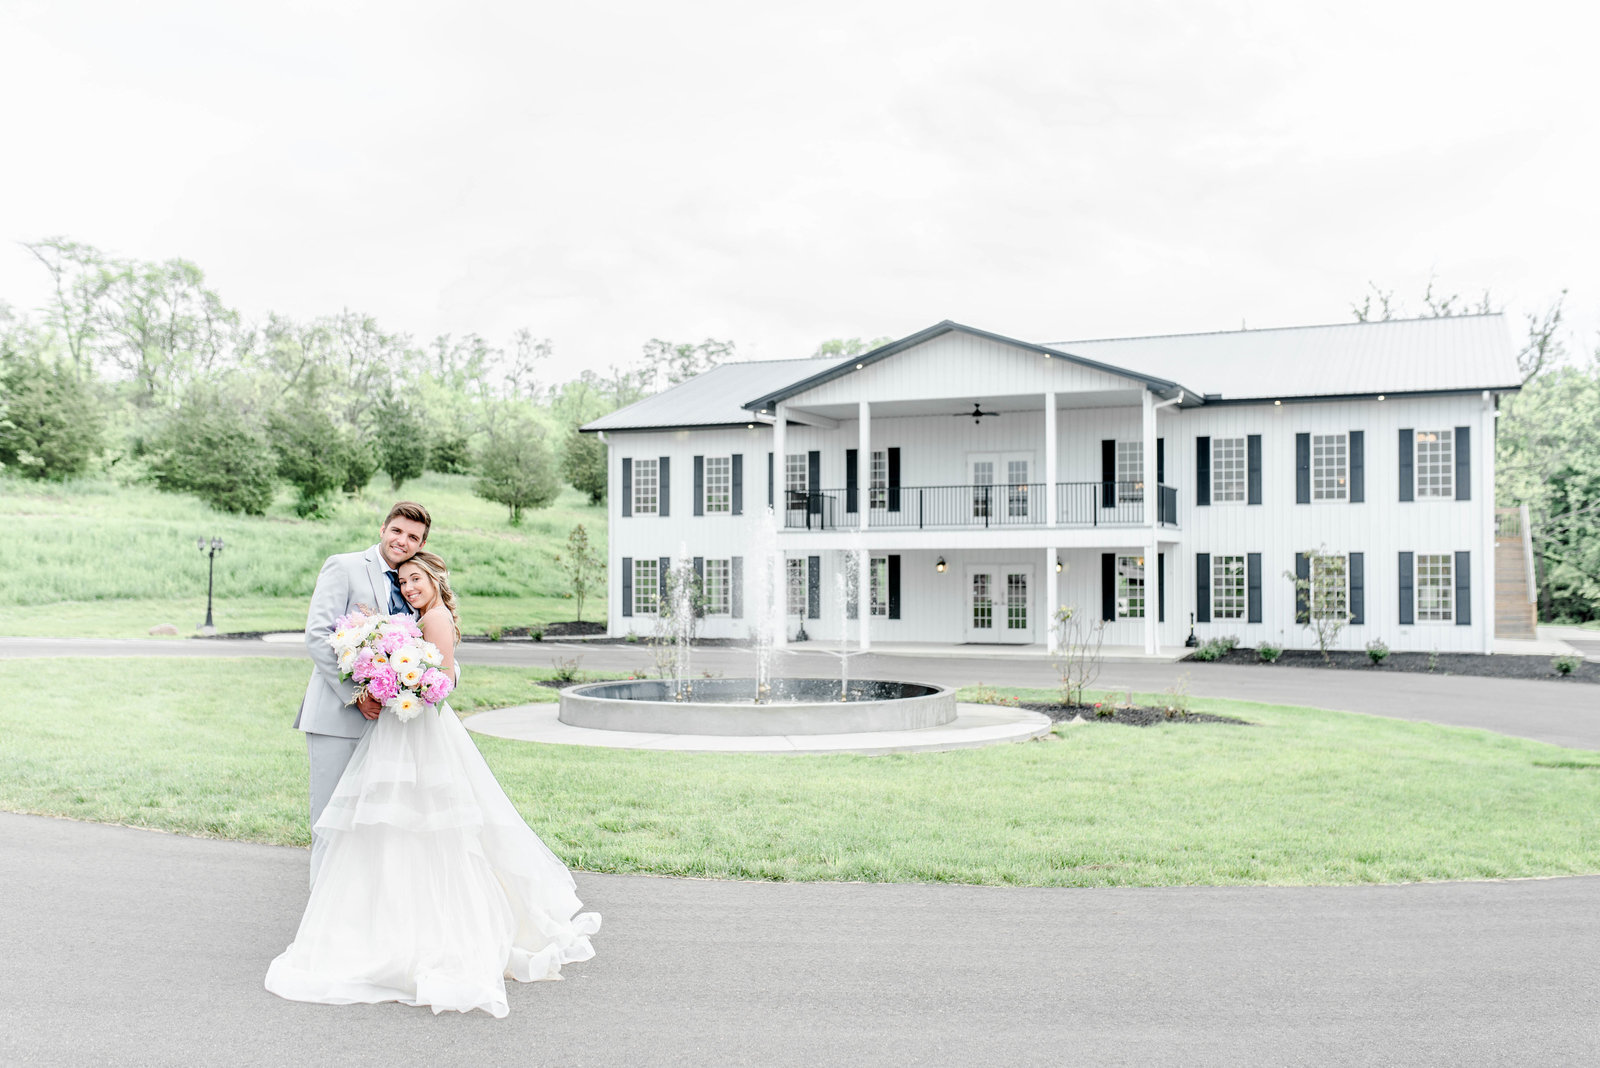 Cassidy Alane Photography-Rosewood Manor - Dayton Ohio - Wedding-Engagement Photography98